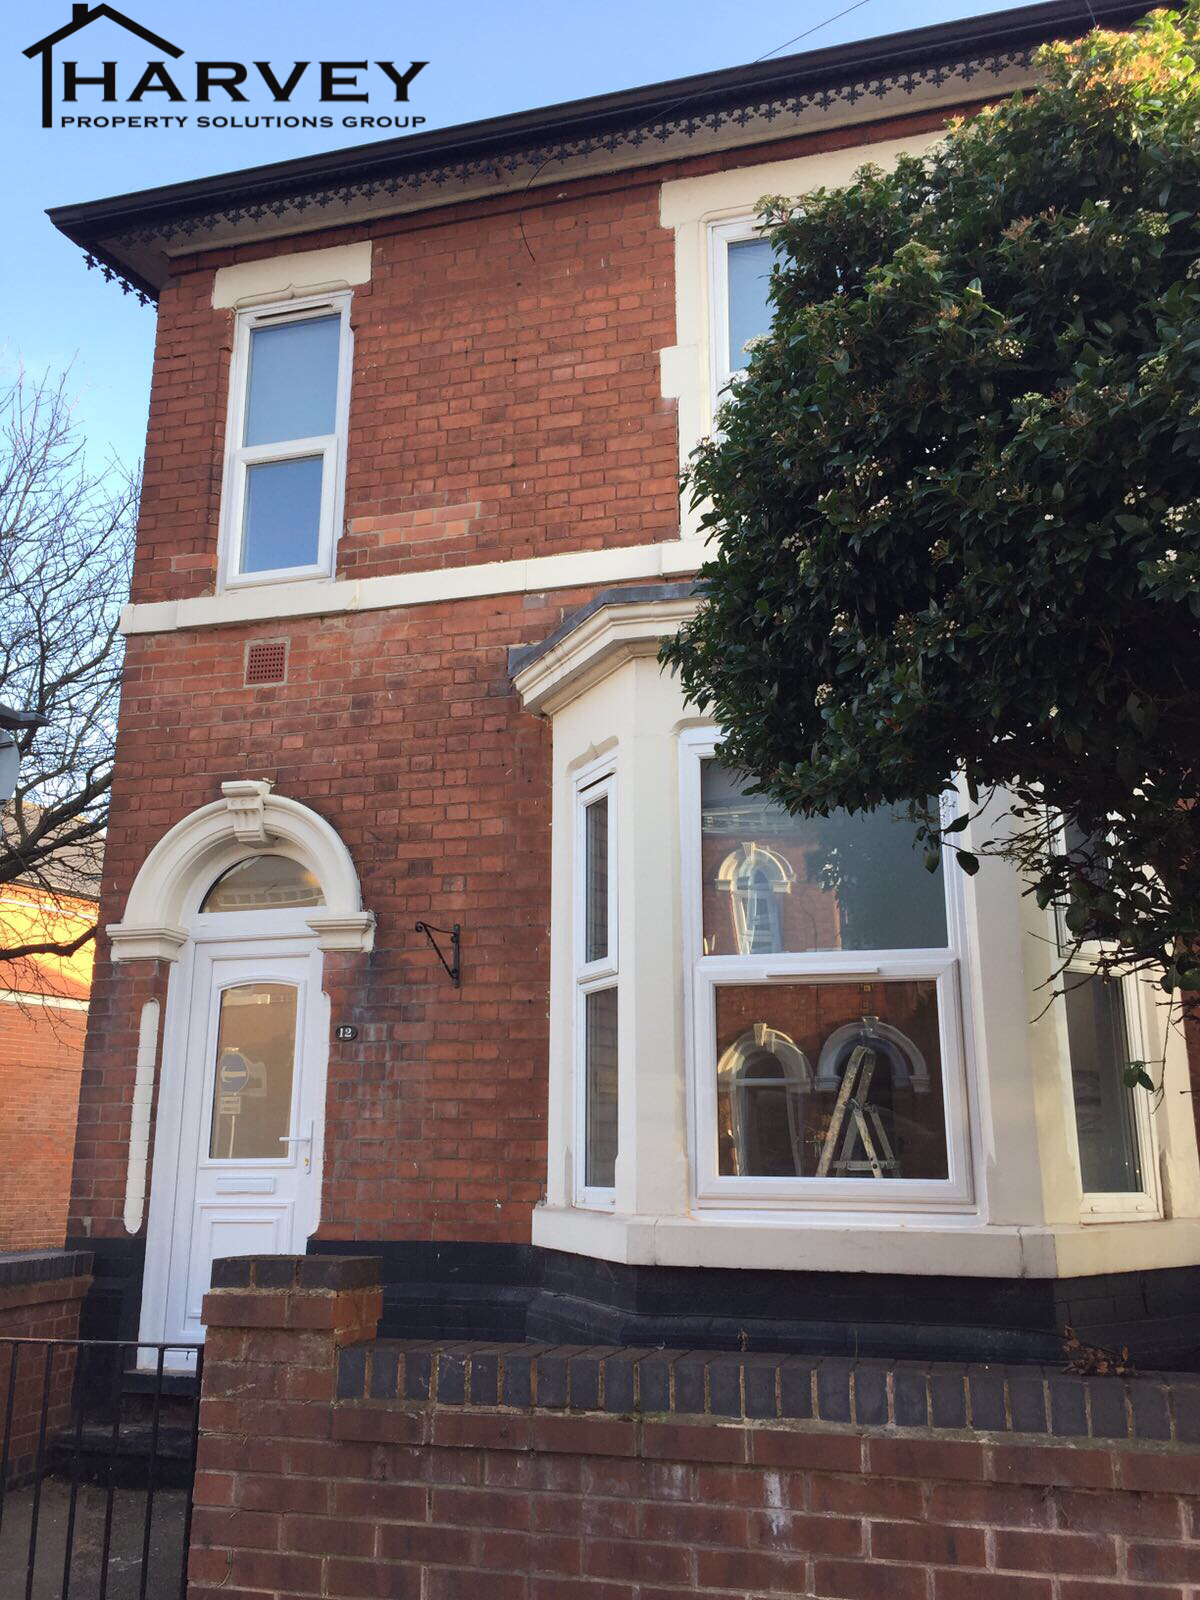 5 bed HMO in Derby